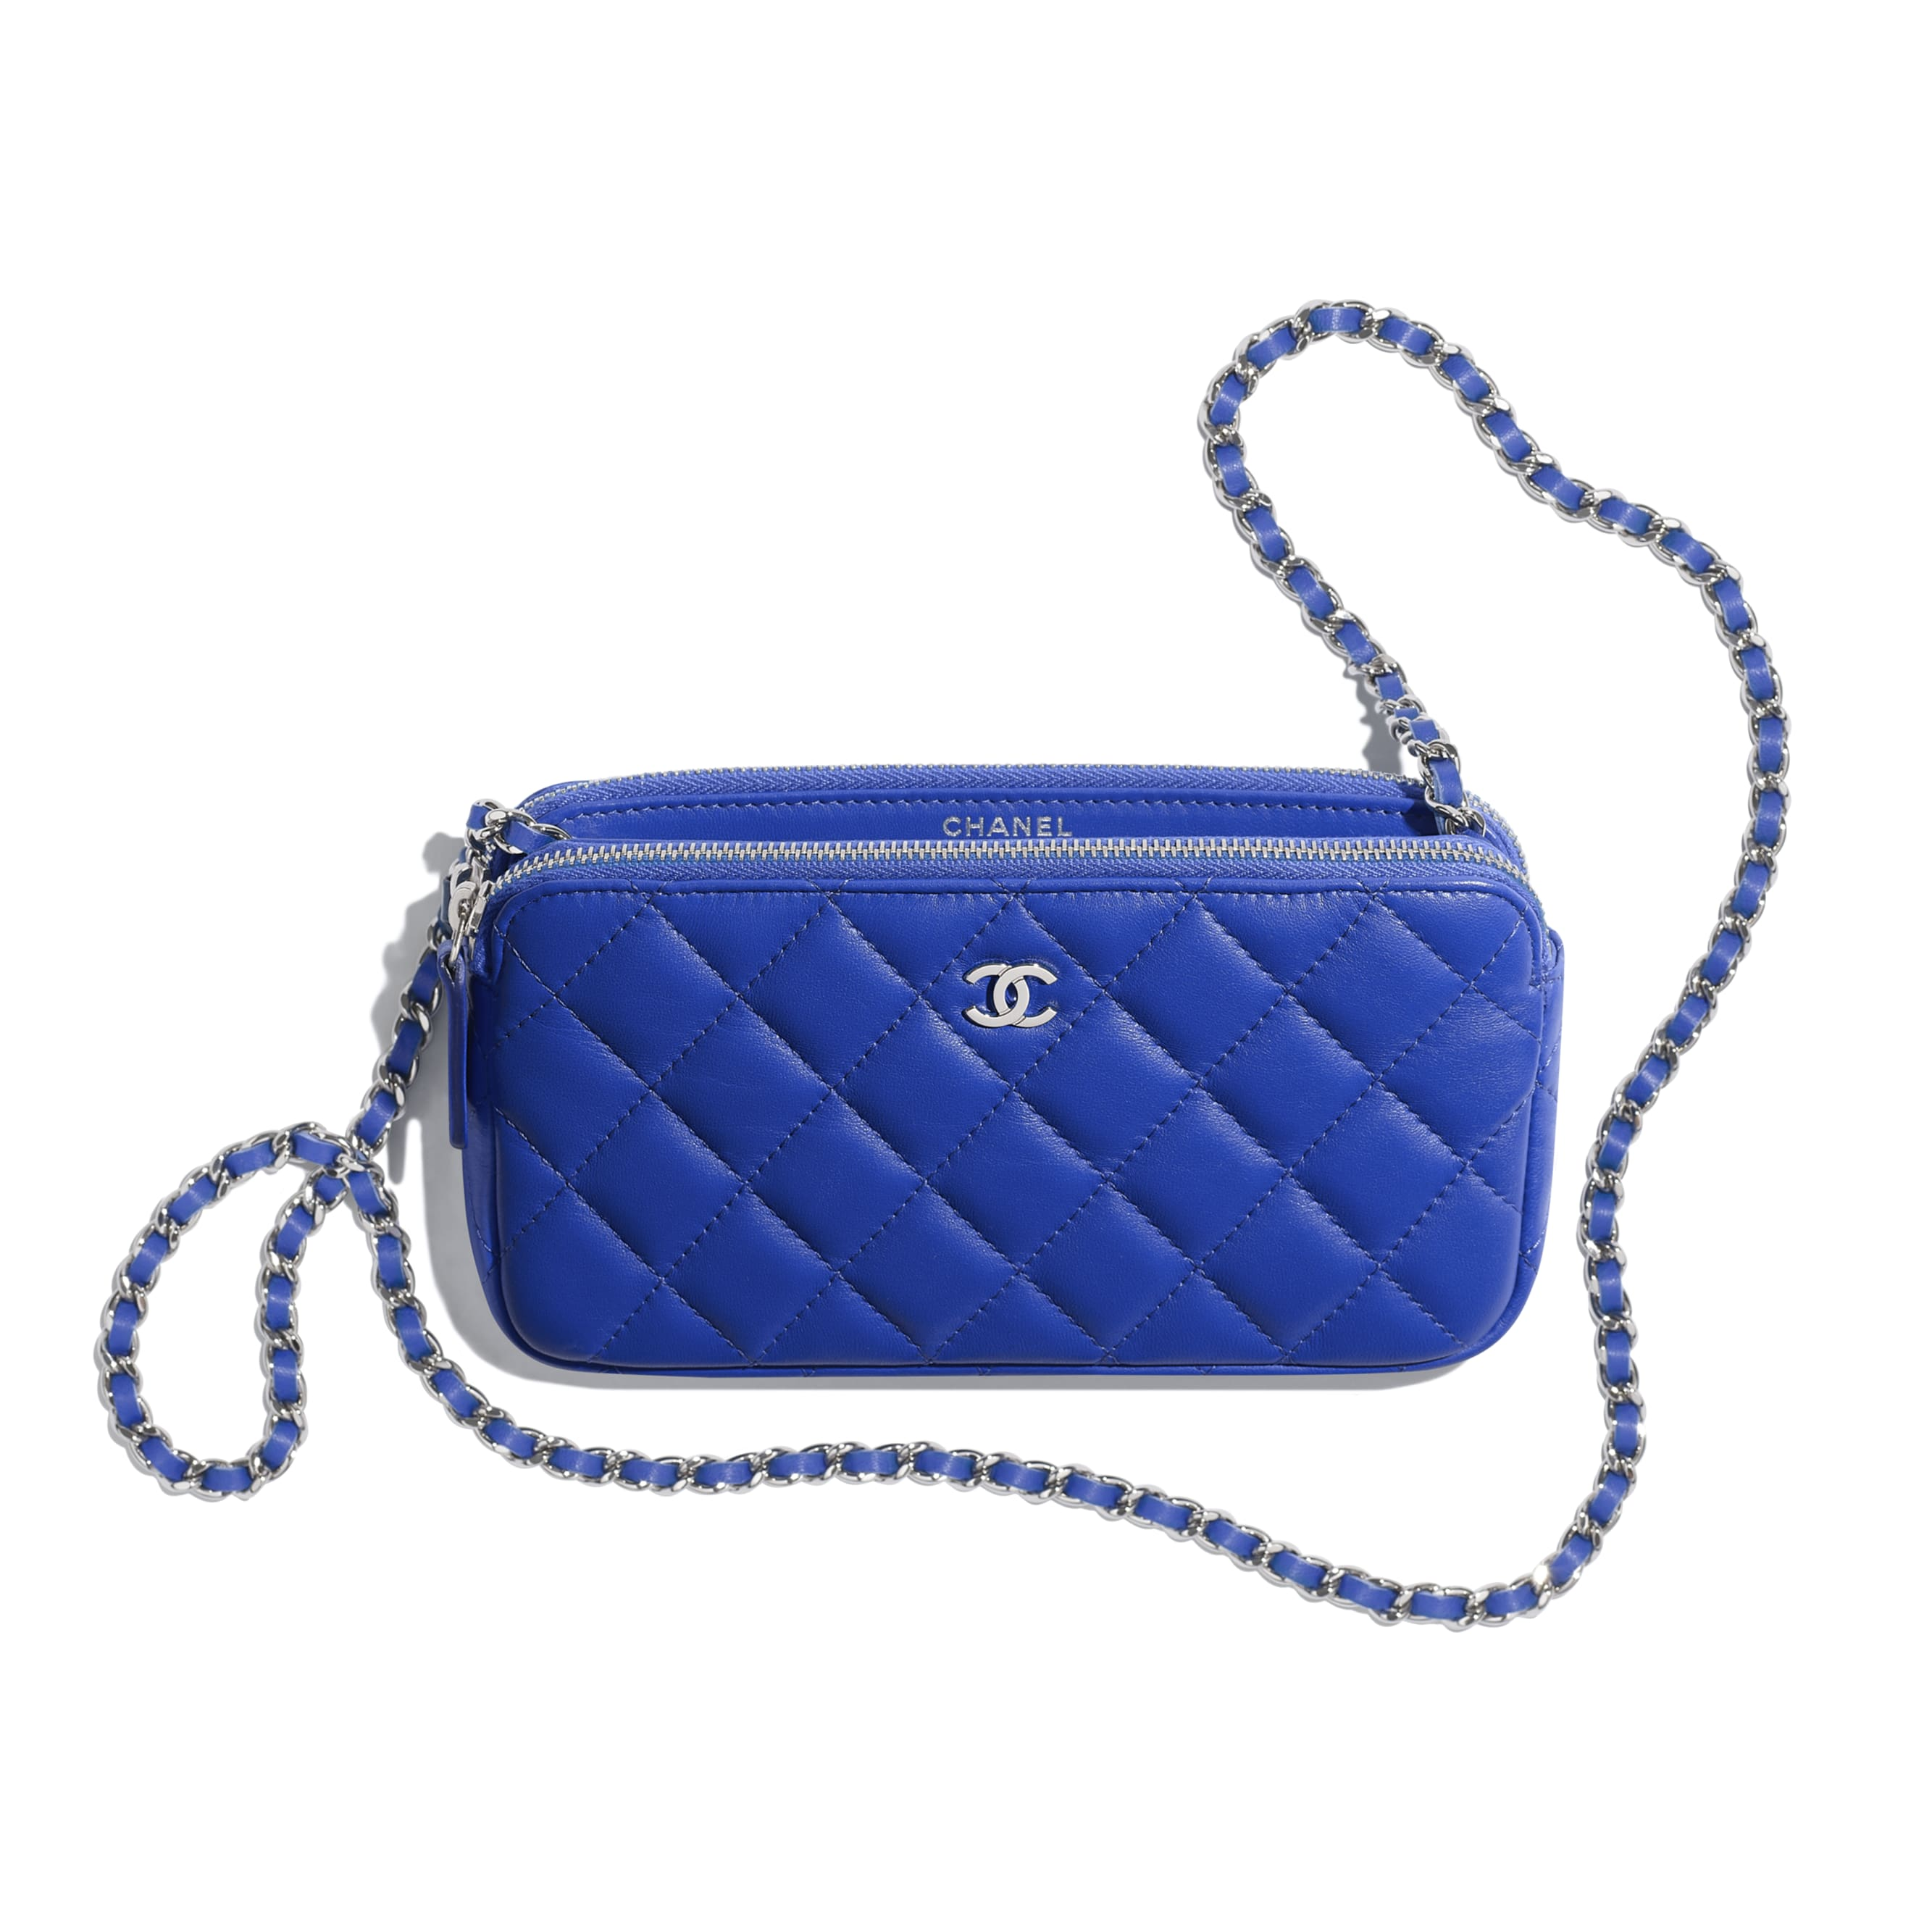 0cce70314469 ... Classic Clutch with Chain - Dark Blue - Lambskin   Silver-Tone Metal -  Other